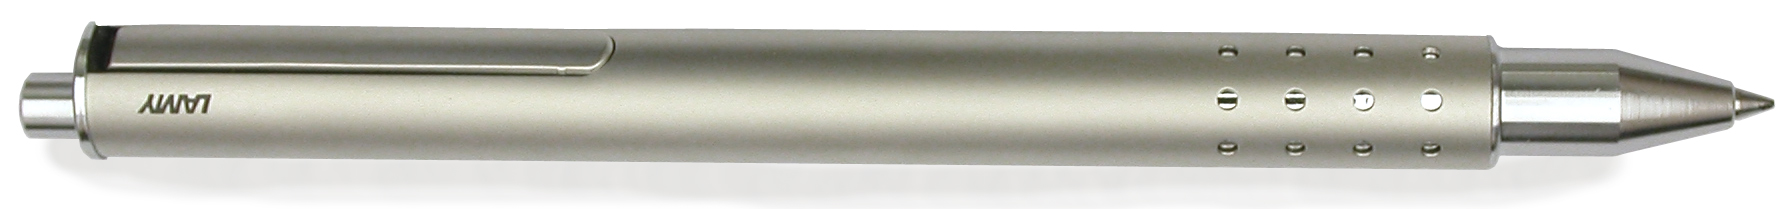 Lamy Swift Palladium Roller ball